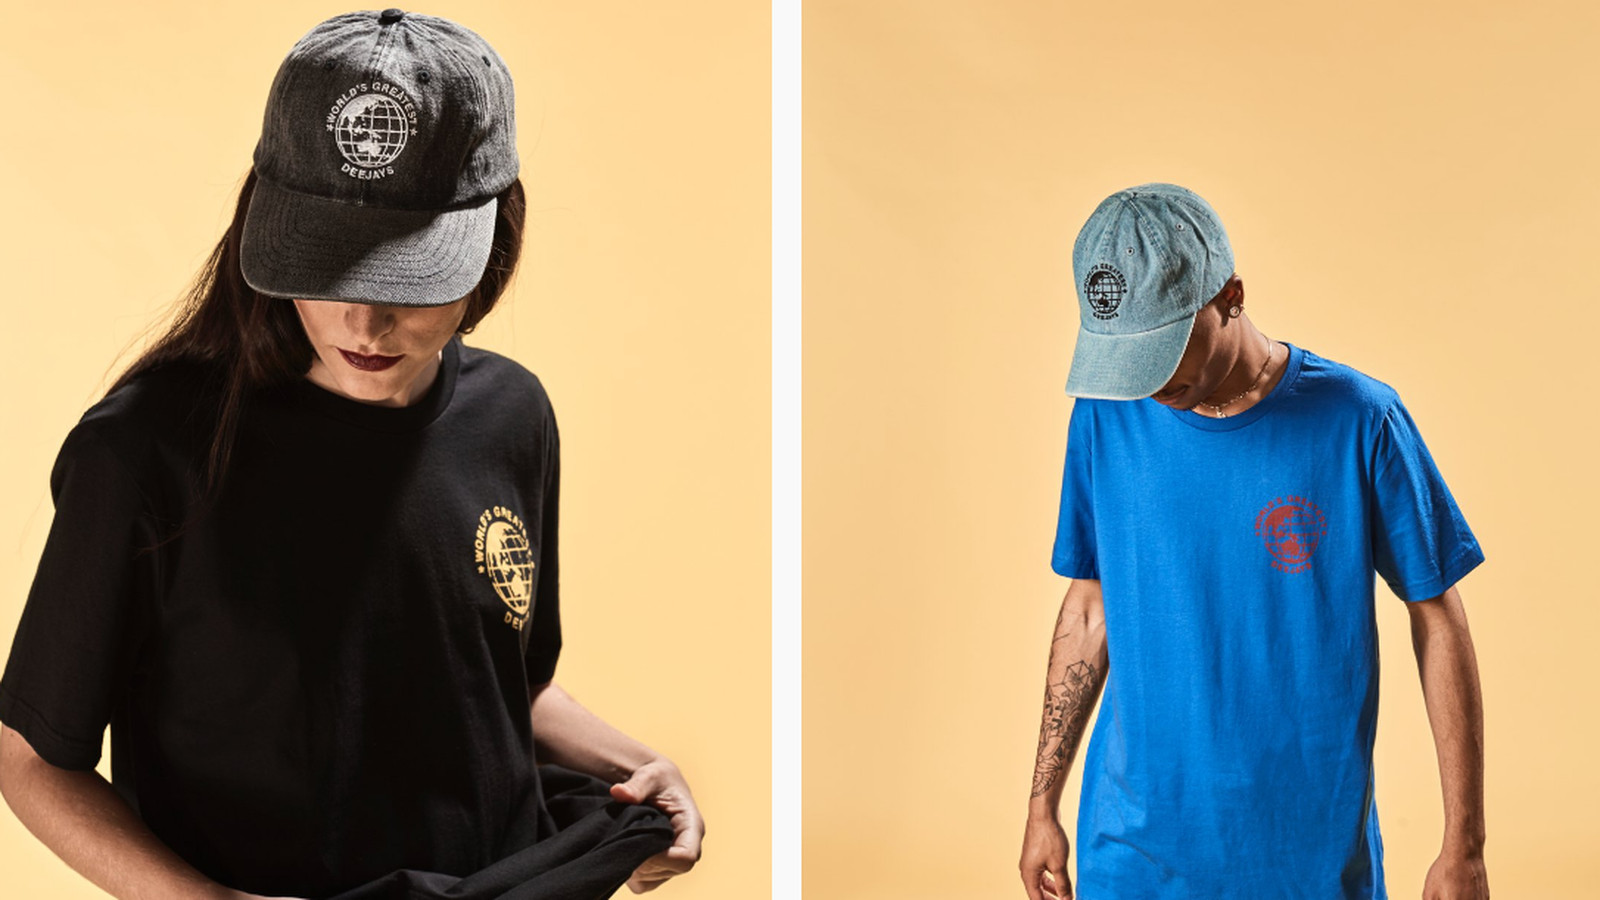 Genius launches a clothing line inspired by pop culture from 1997